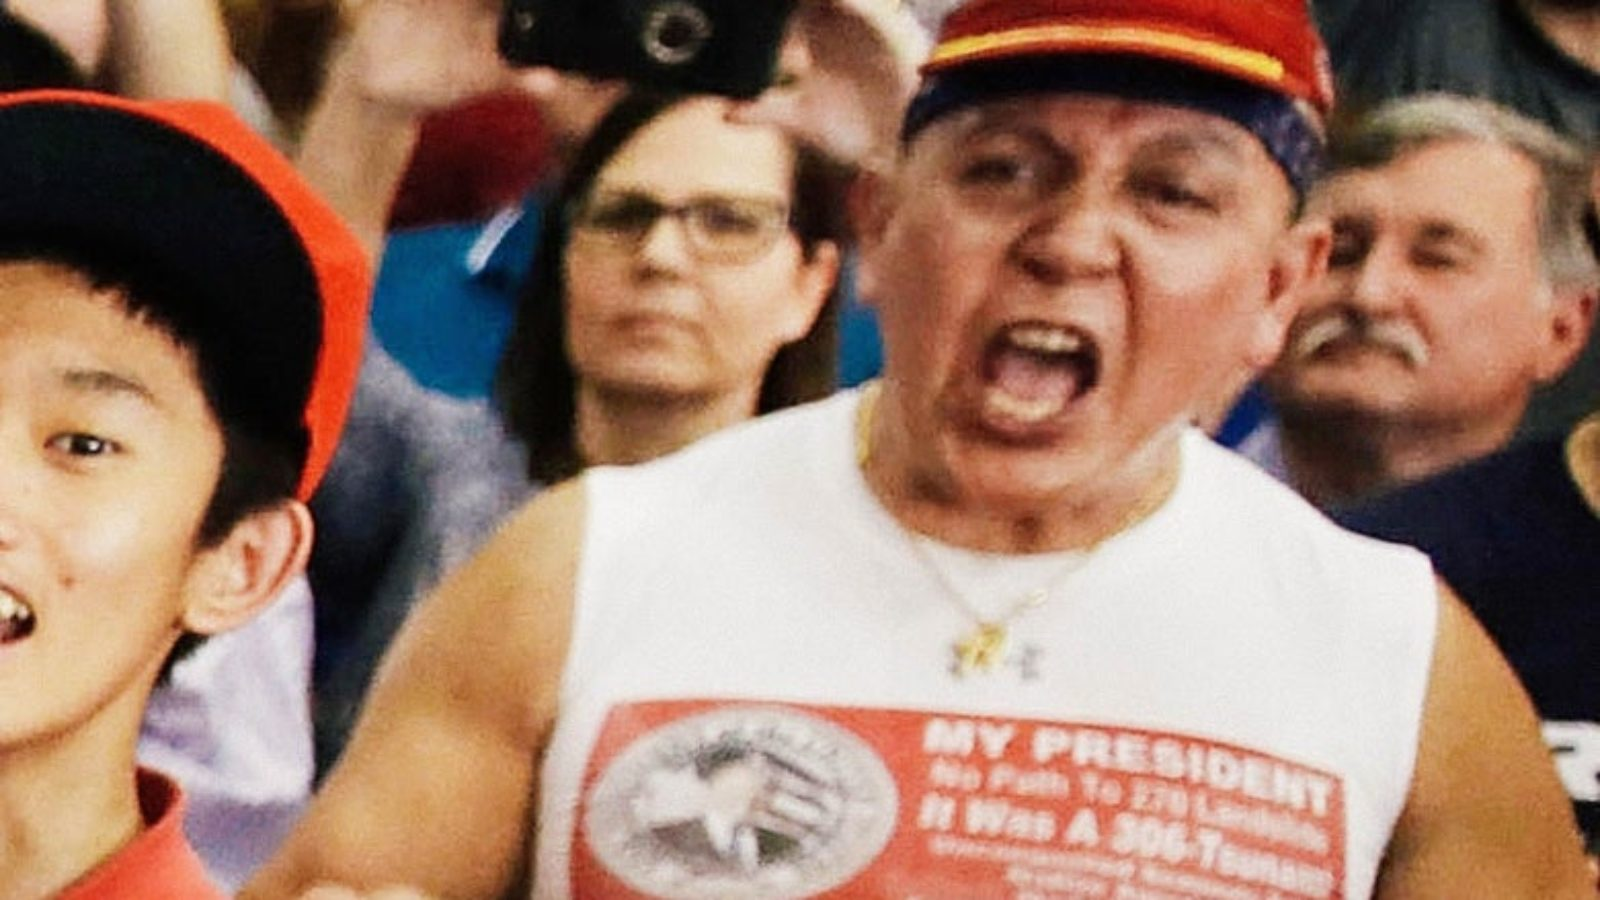 A man shouts at a rally for President Trump